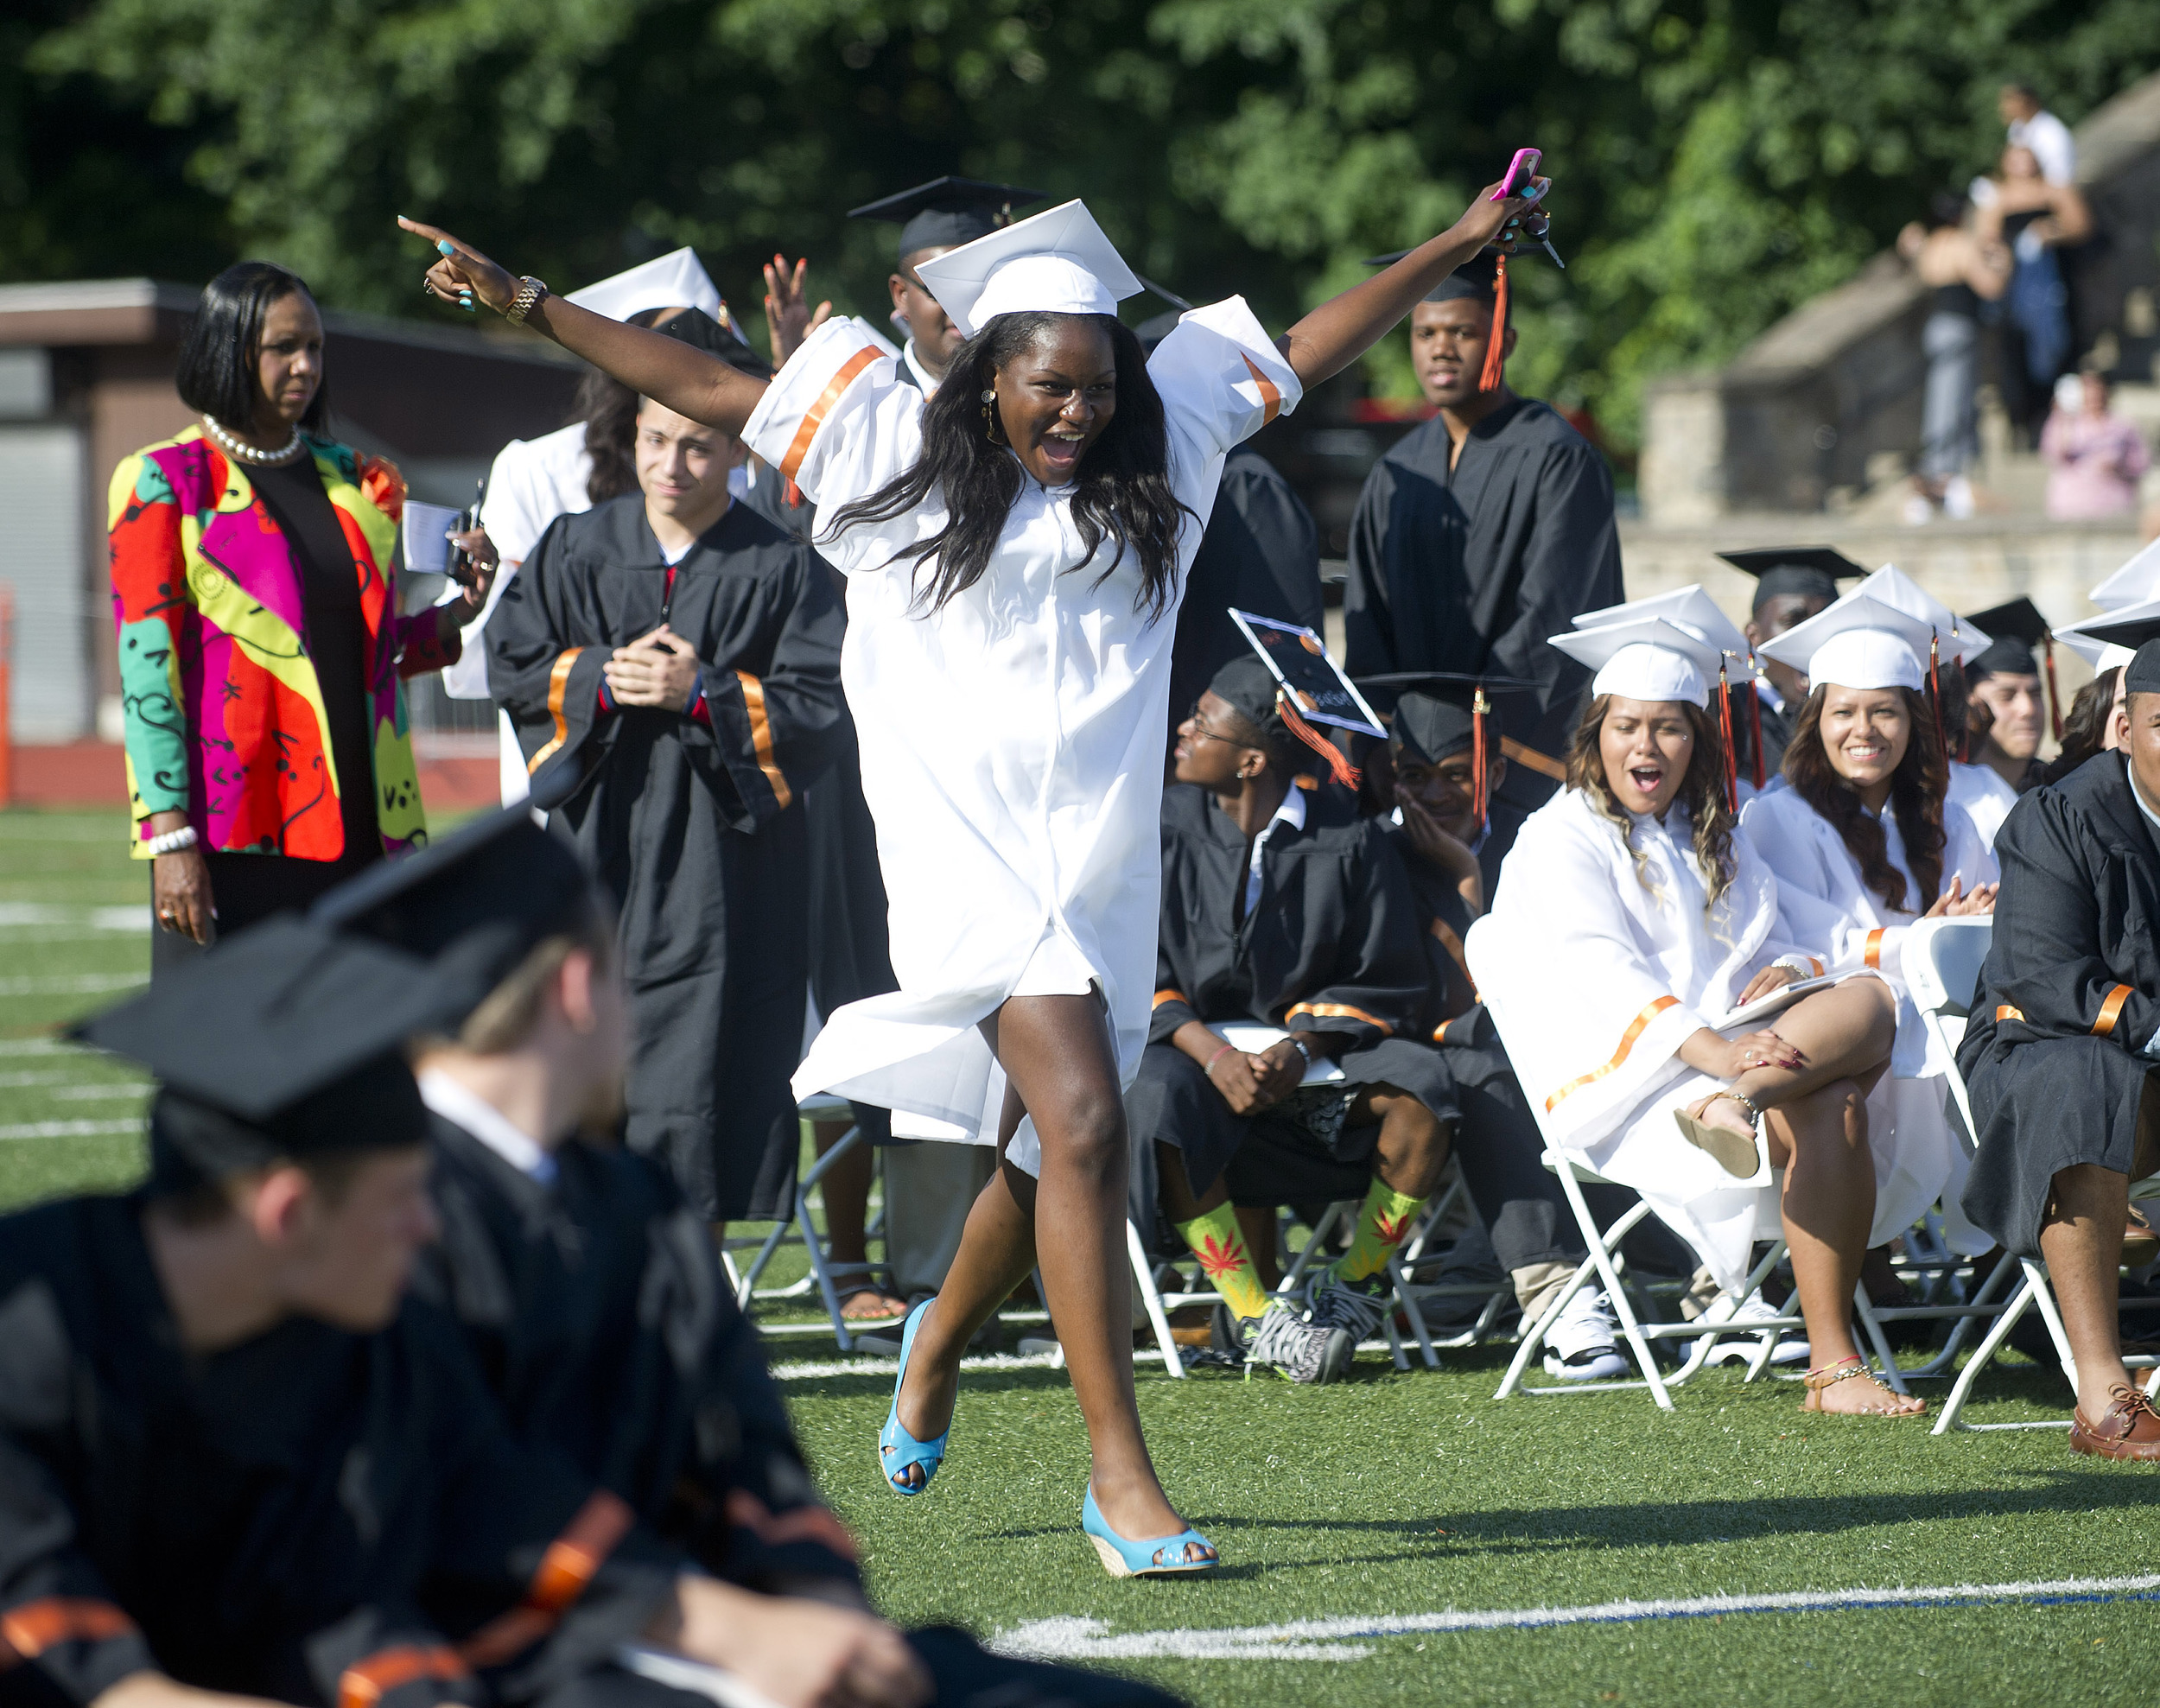 Stetya Jean Baptiste dances her way to the podium to get her diploma during the Stamford High School commencement ceremony on Thursday, June 19, 2014.